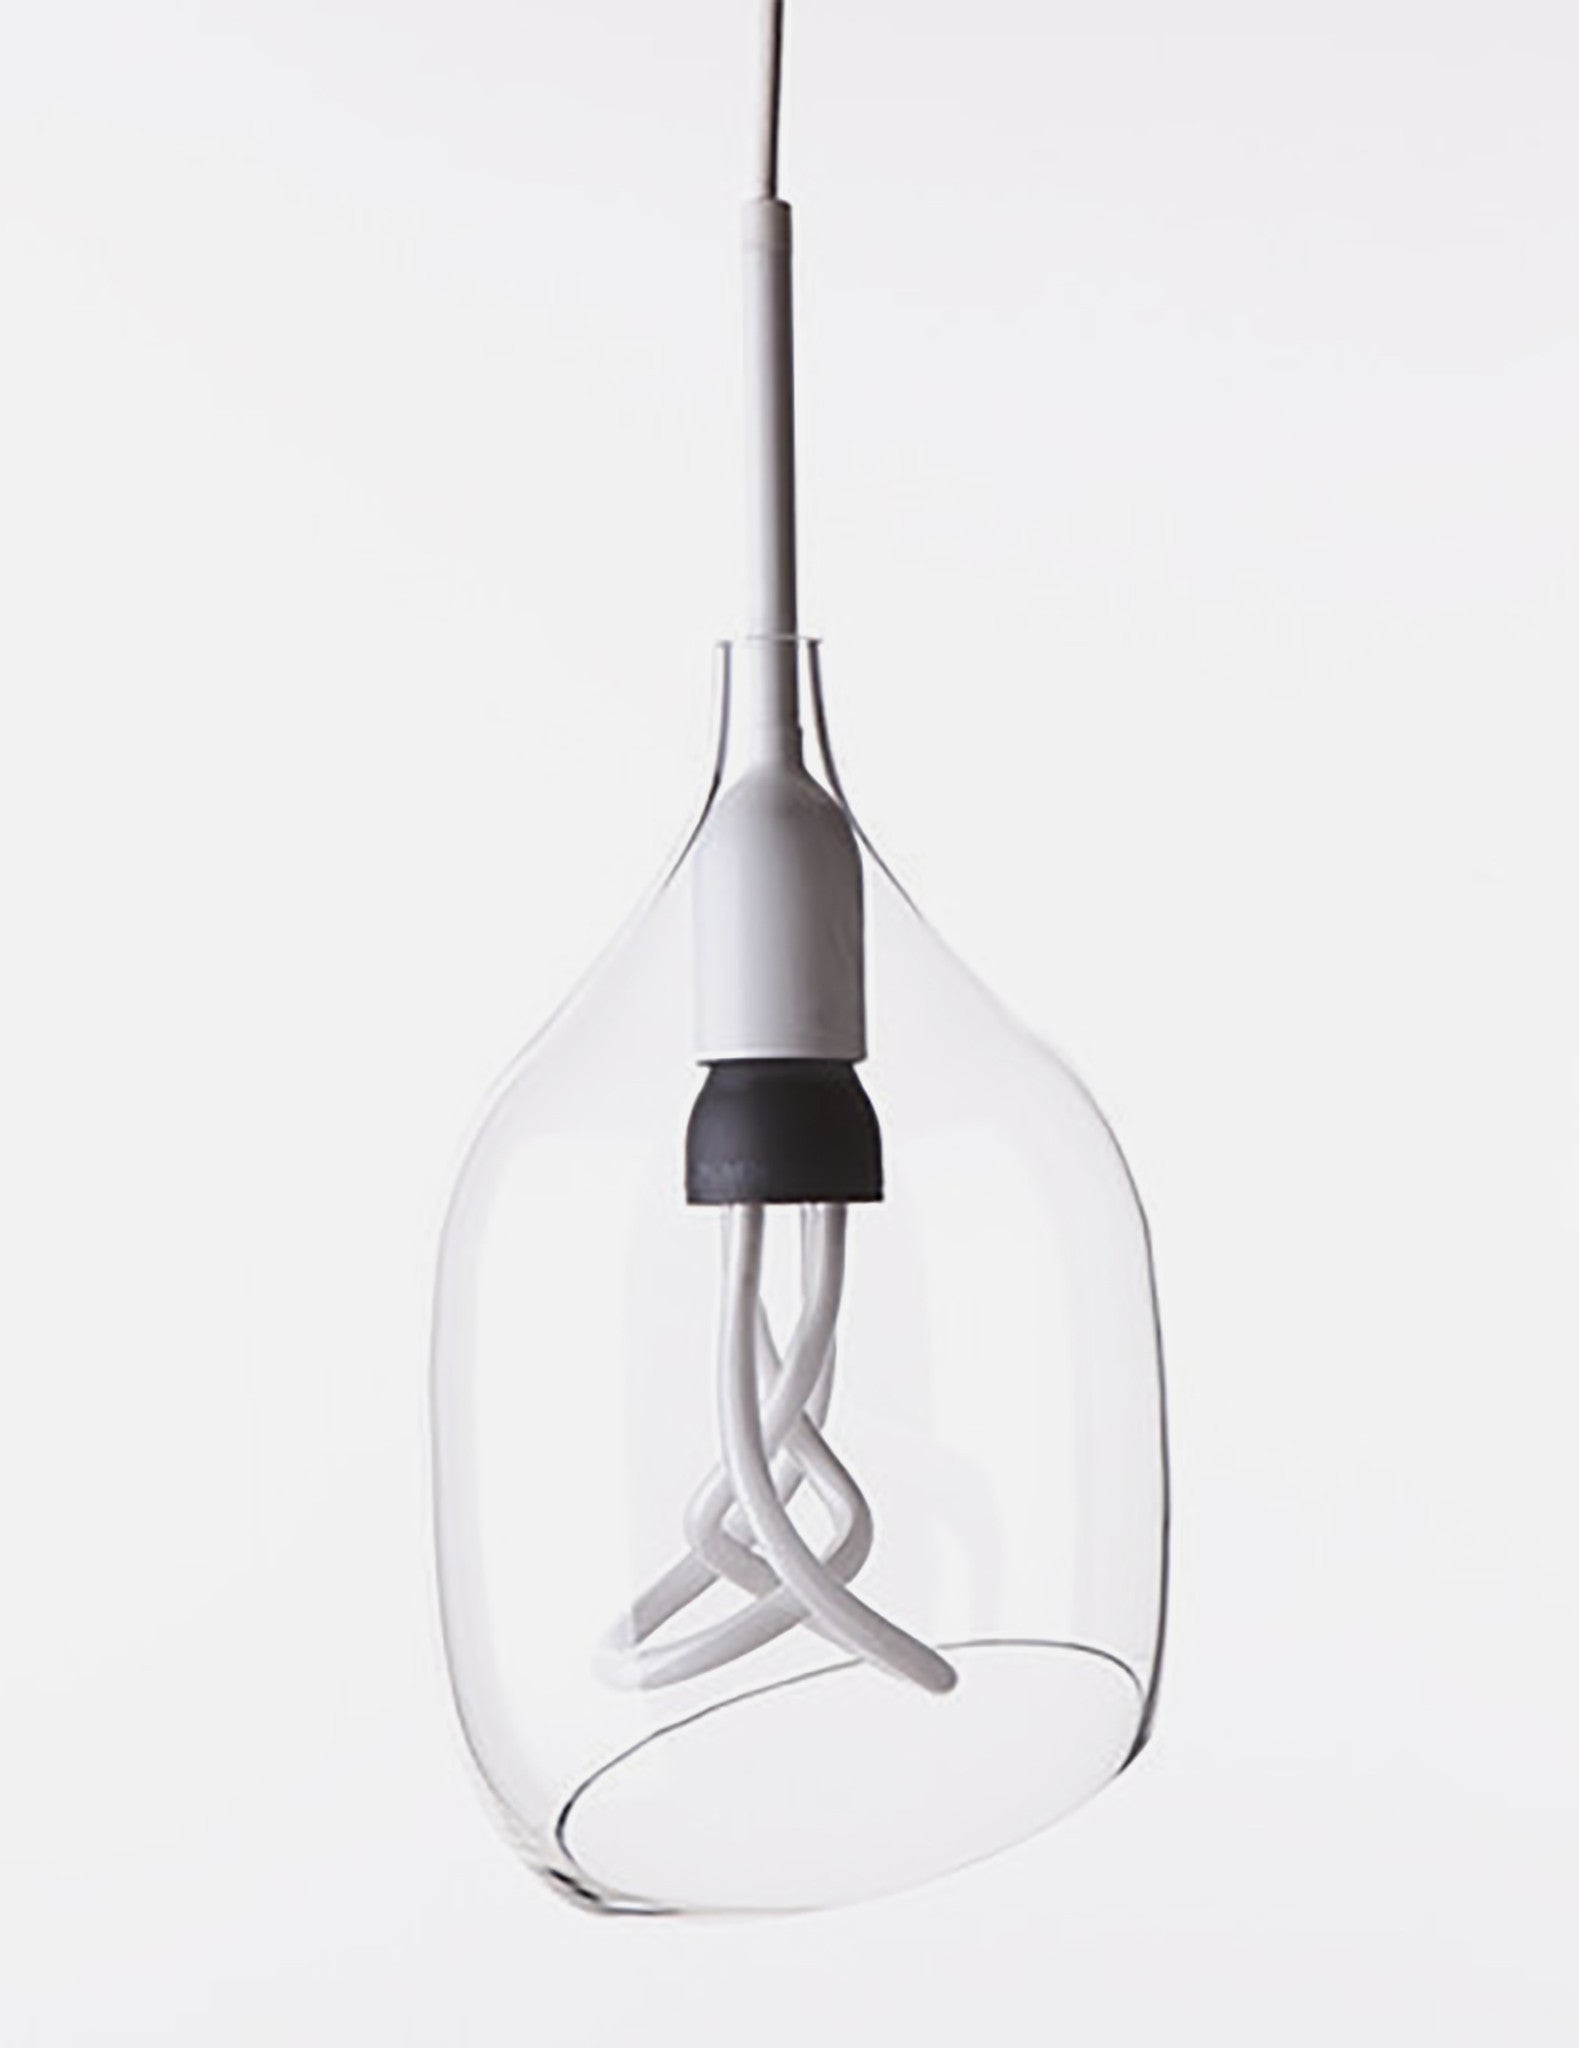 clear glass vessel lamp shade diagonal cut plumen uk. Black Bedroom Furniture Sets. Home Design Ideas